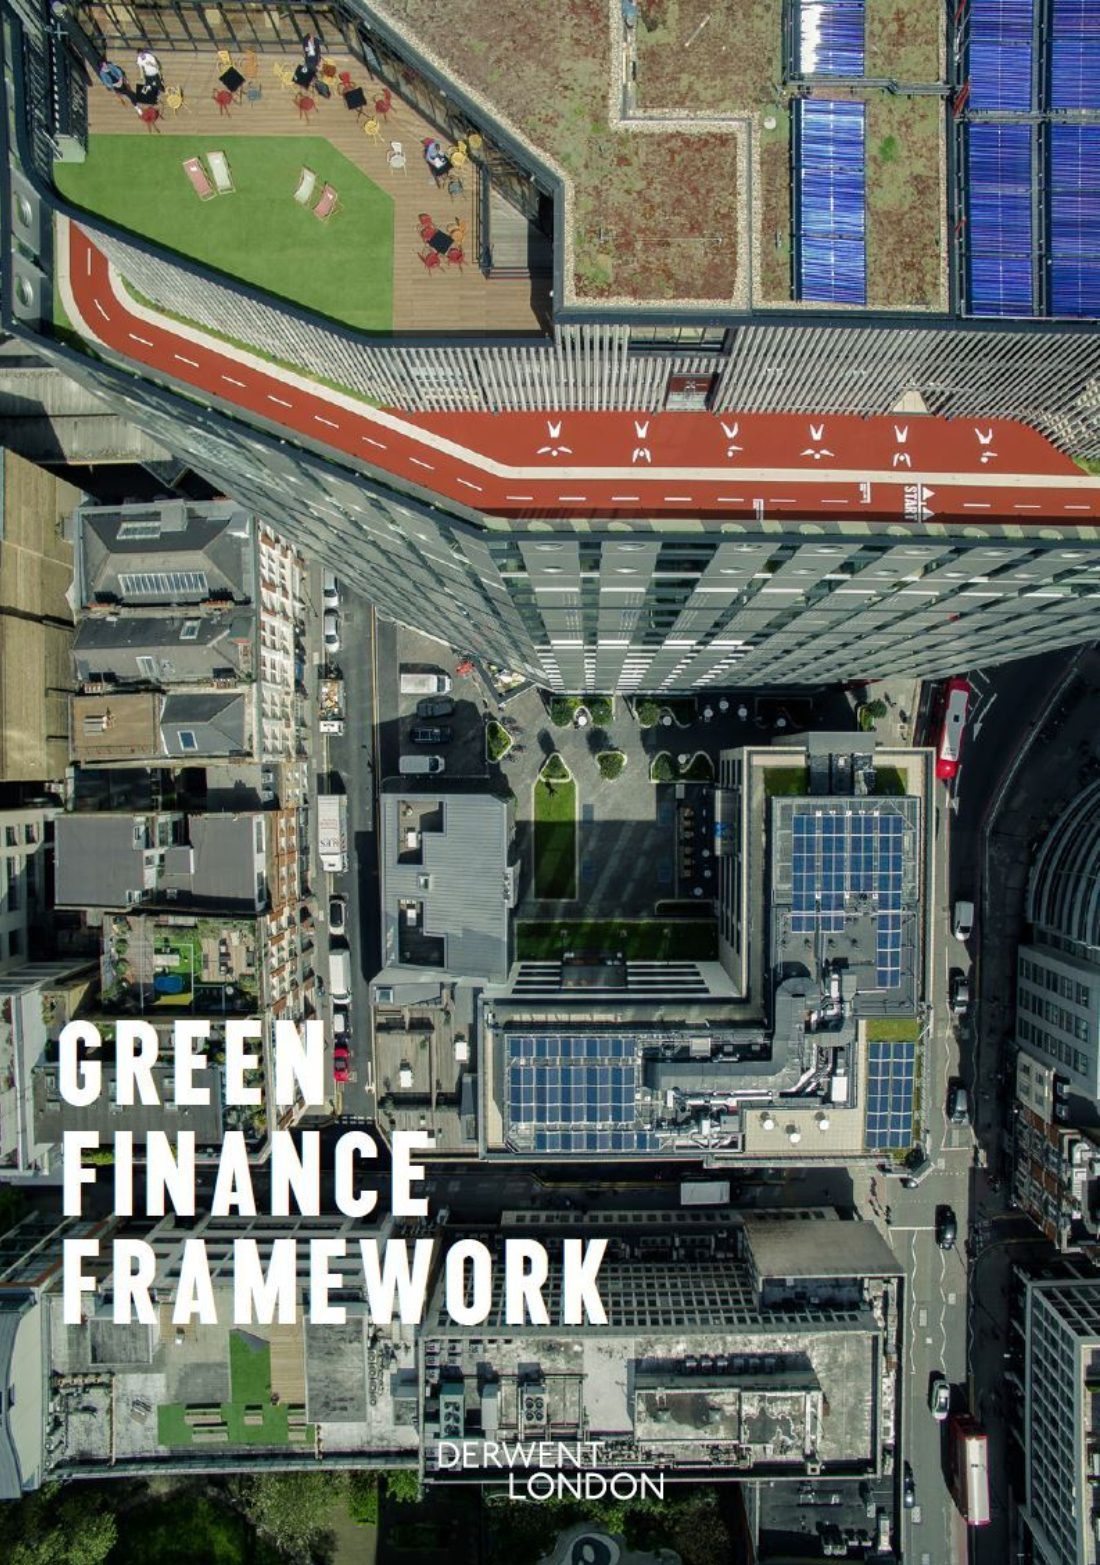 Green Finance image